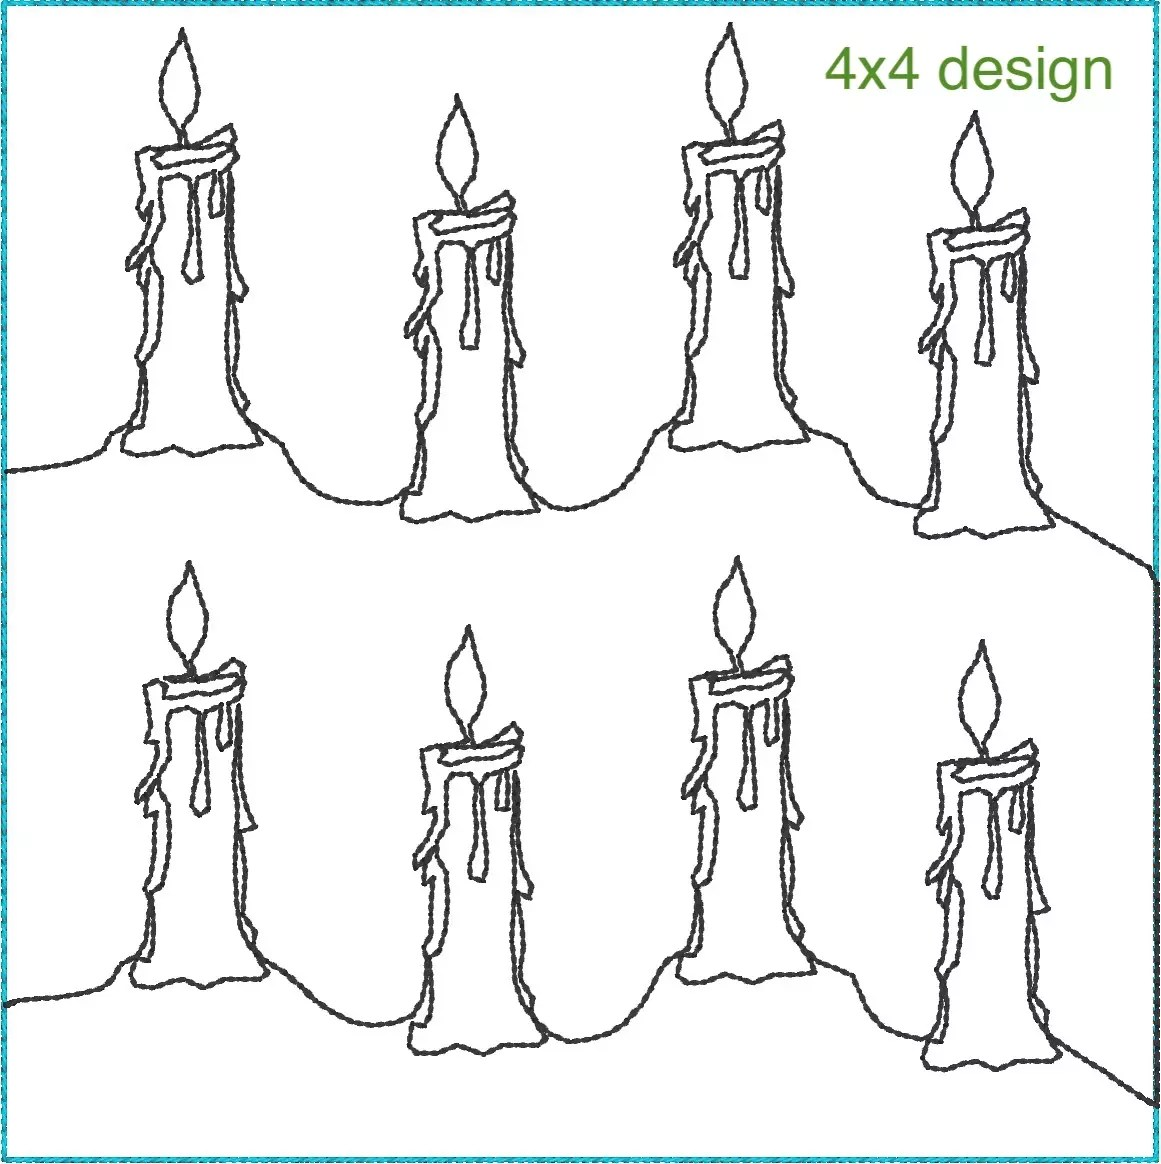 Continuous Candle Quilting Pattern. For 4x4, 5x5, 6x6 and